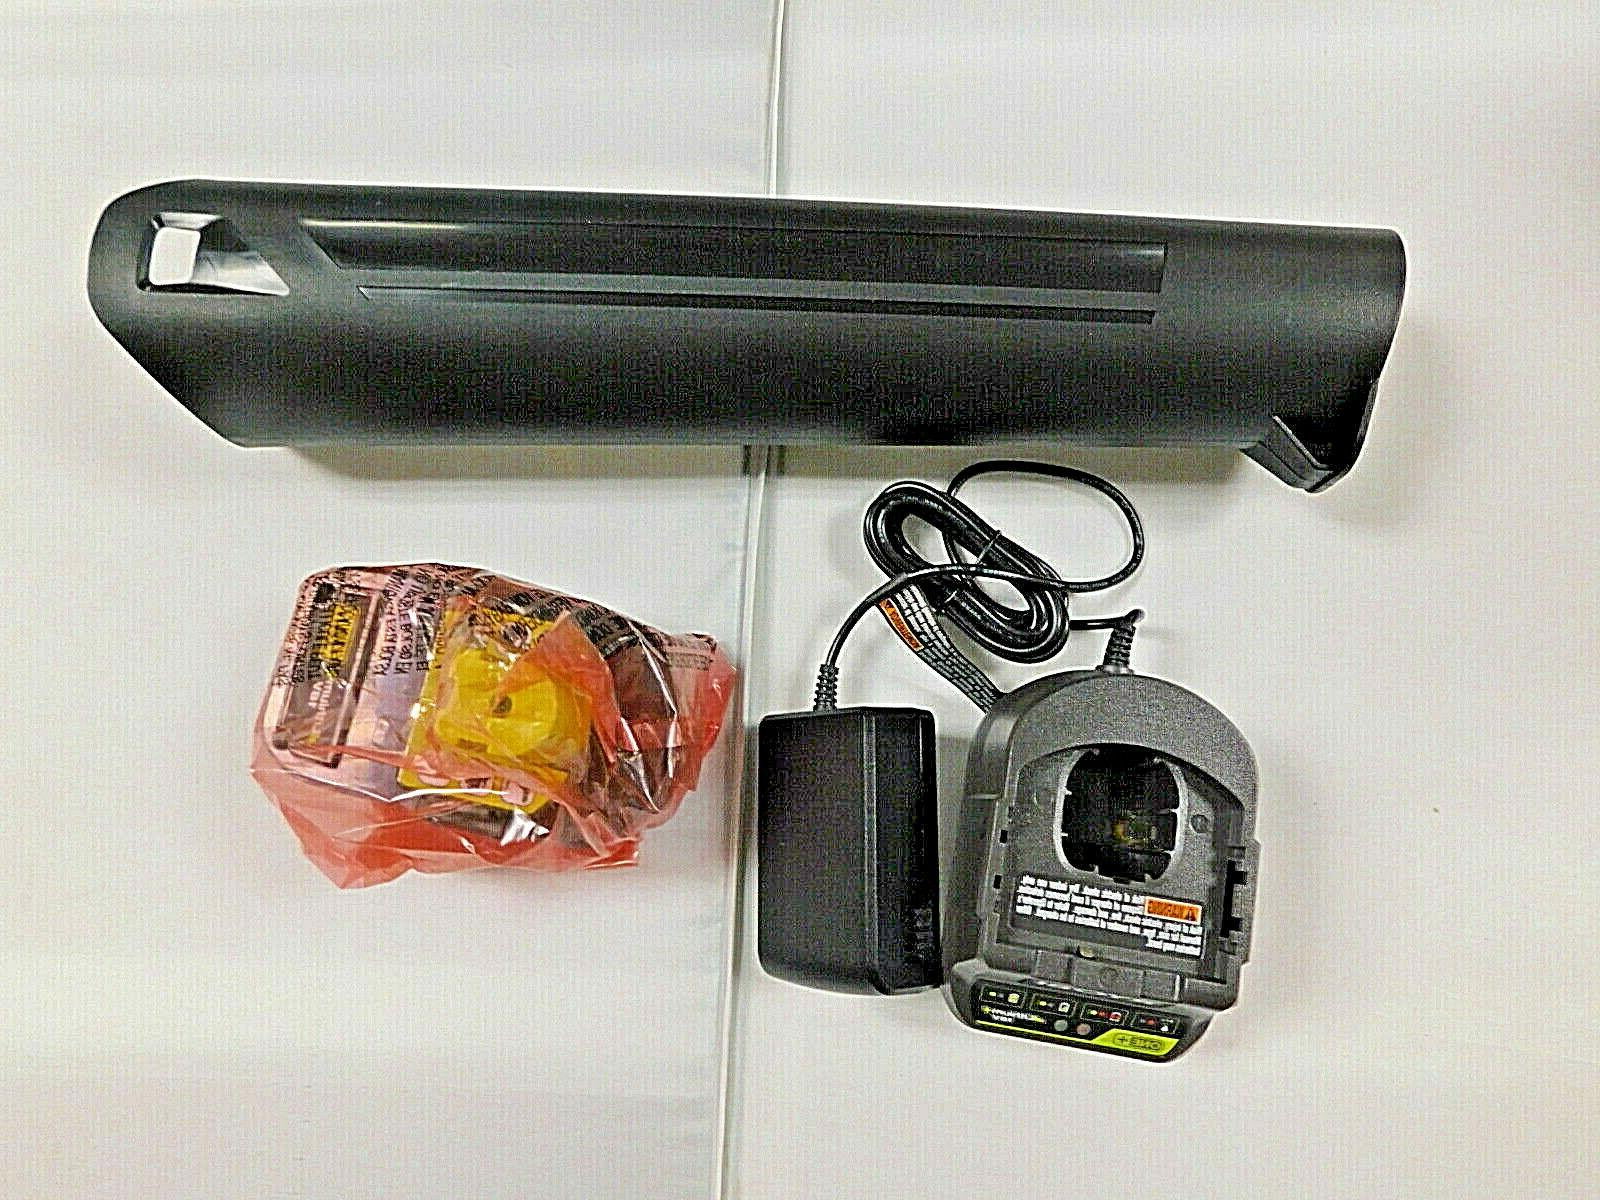 18-Volt Lithium-Ion Jet Fan Leaf Blower MPH 280